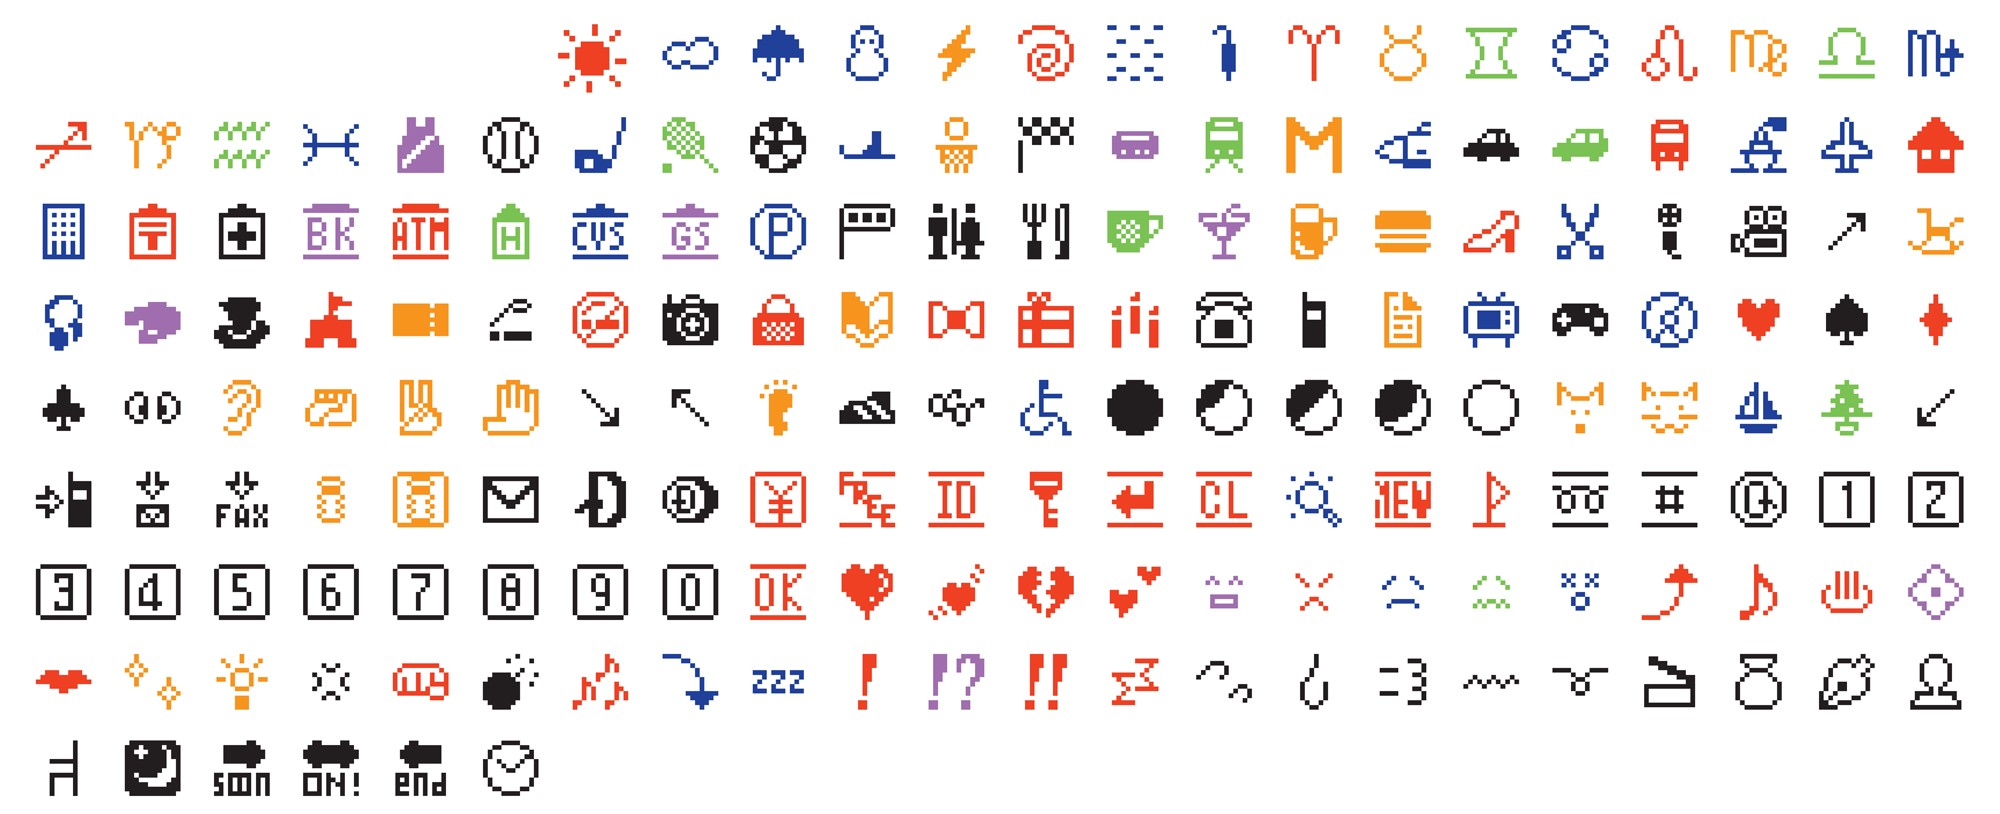 The Original NTT DOCOMO Emoji Set Has Been Added to The Museum of